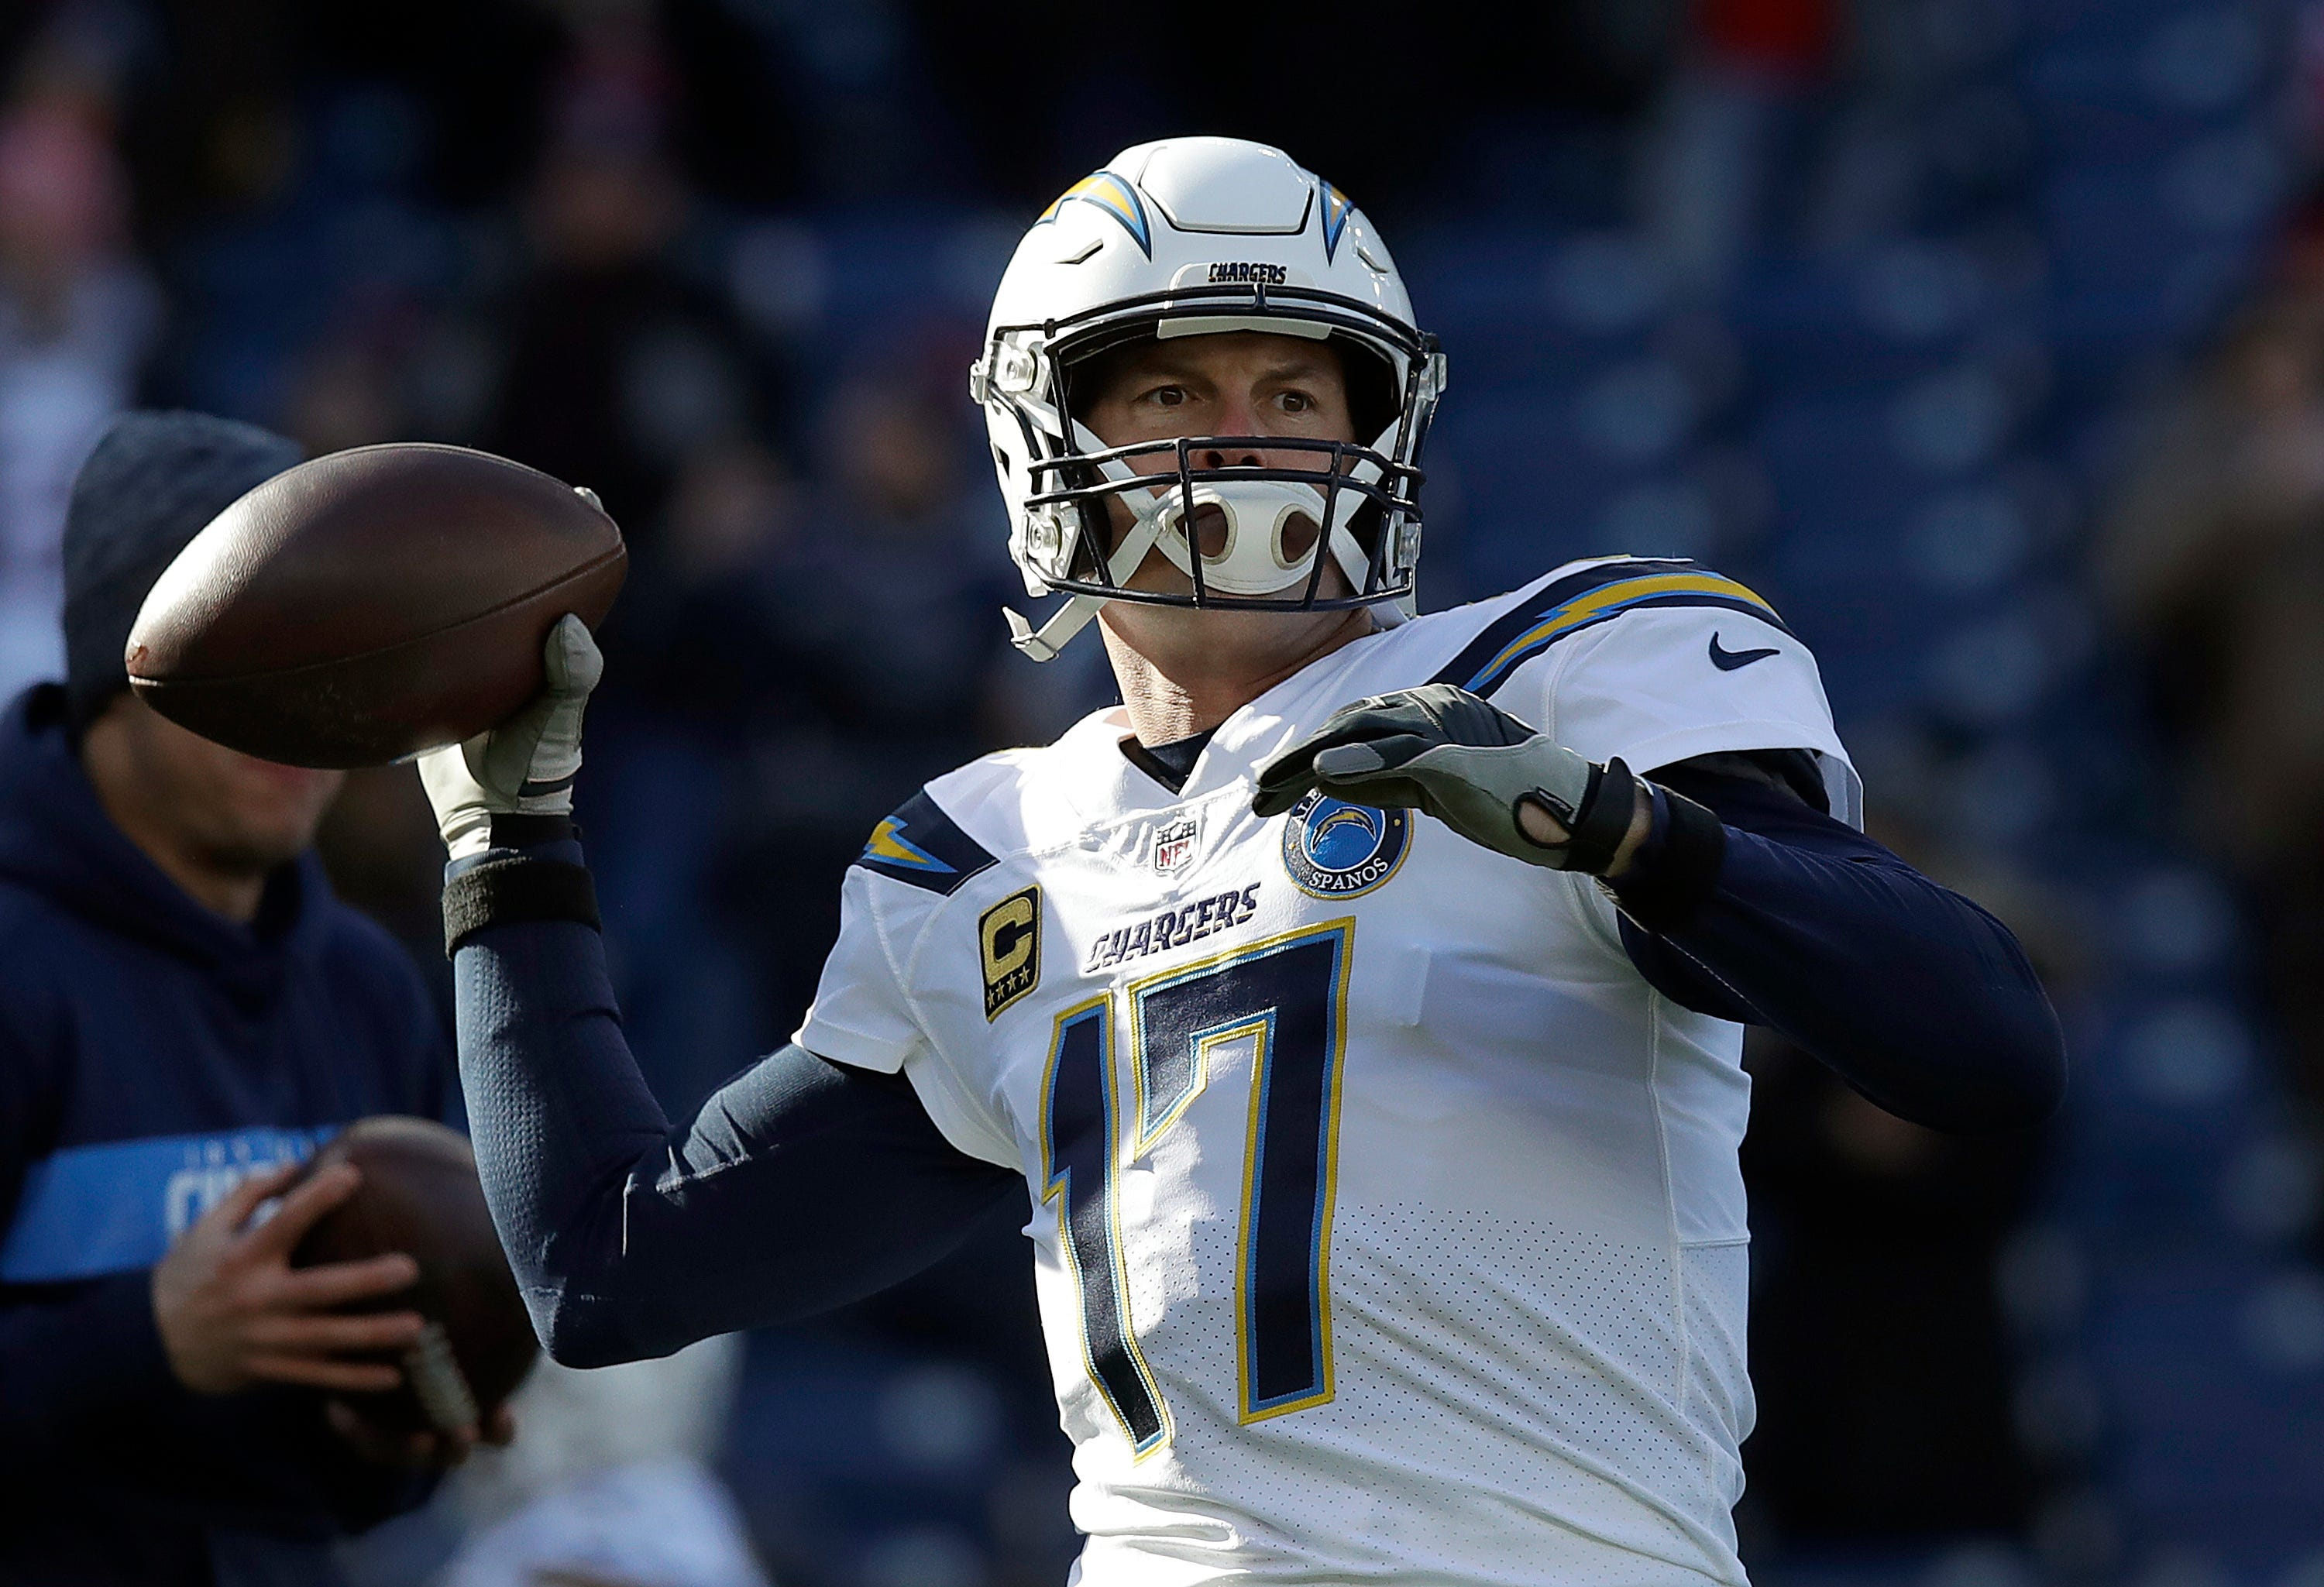 Emotional Philip Rivers thanks San Diego for its support